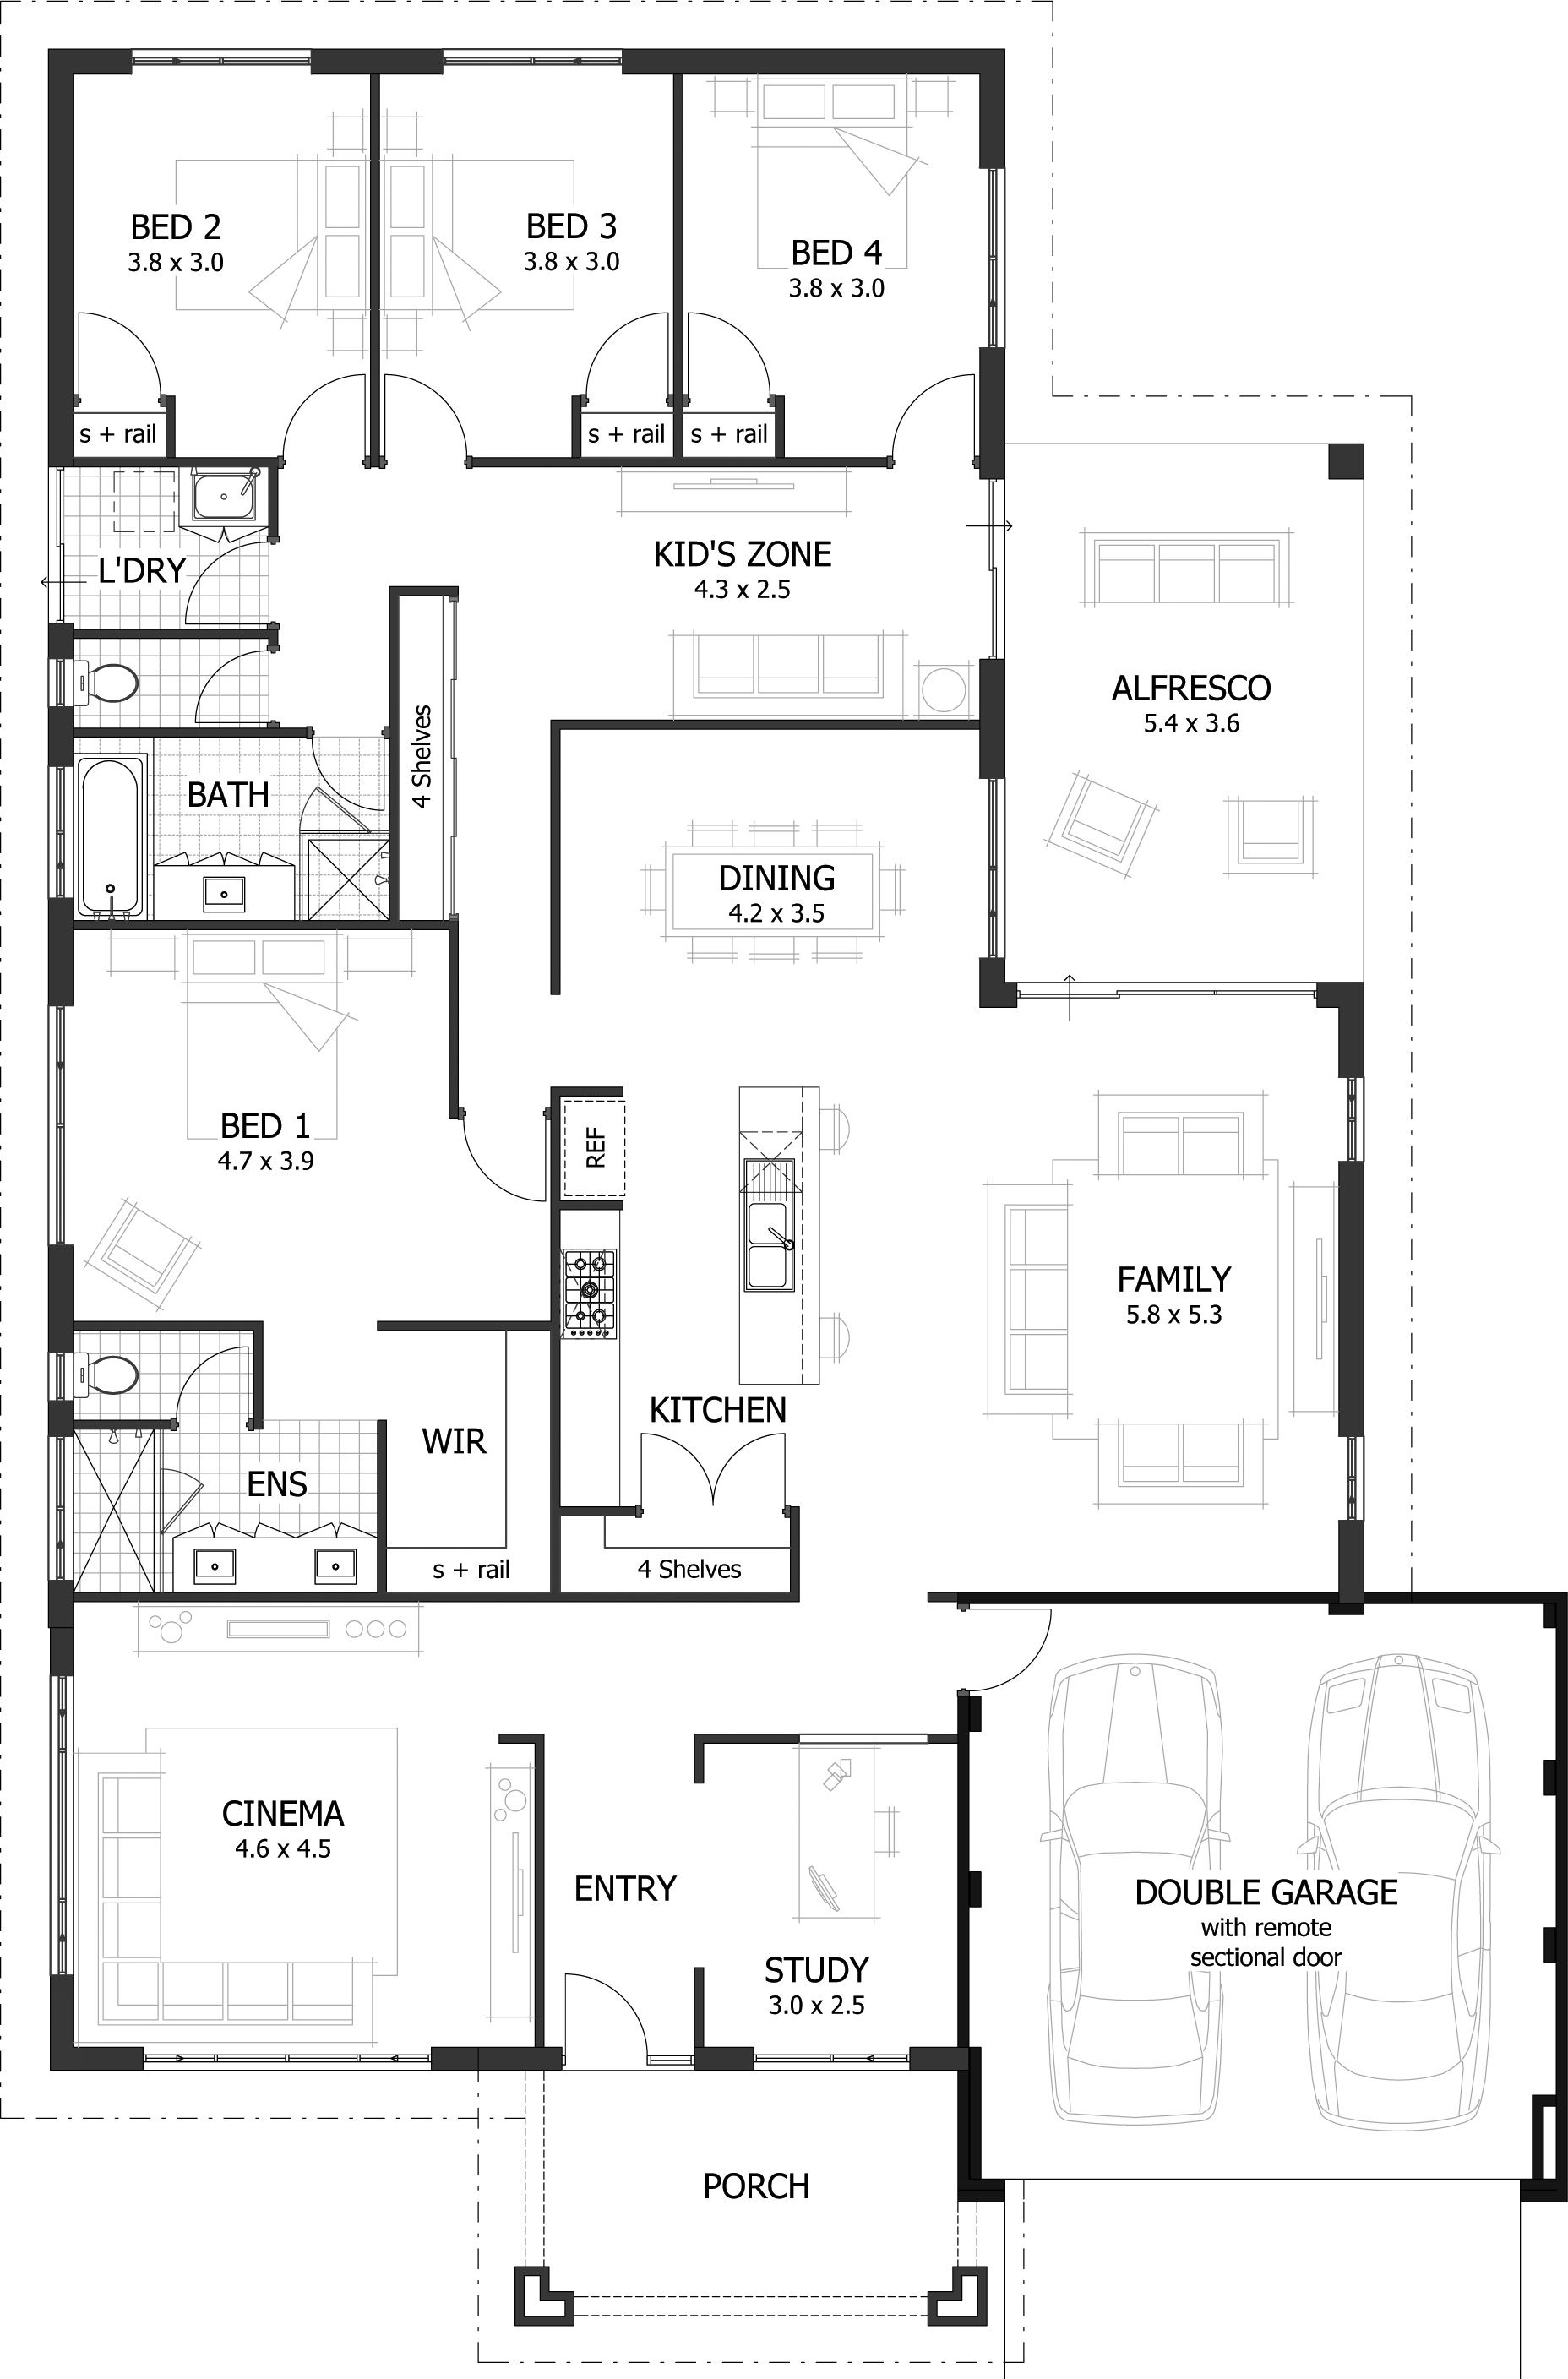 4 bedroom house plans home designs celebration homes - Home Design Blueprints